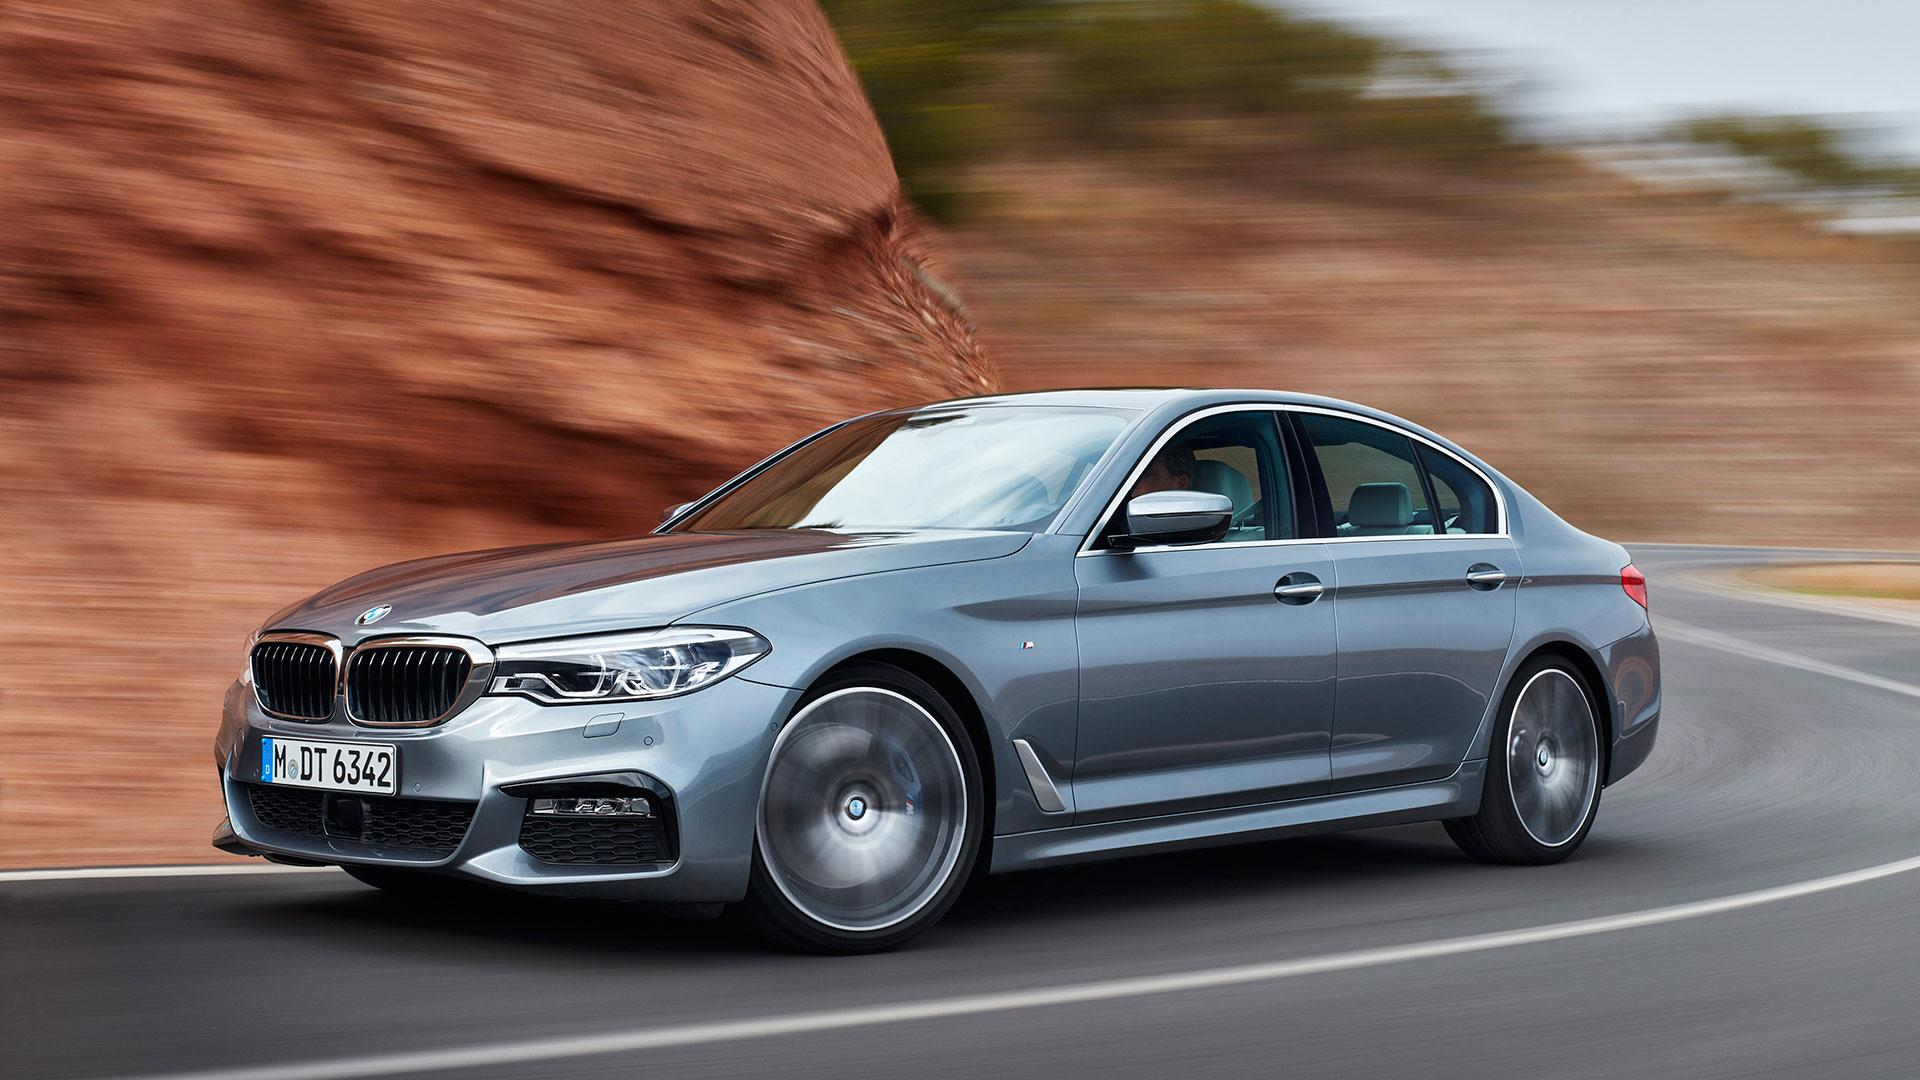 Driving the 2017 BMW 5 Series Is Like Touching Tomorrow